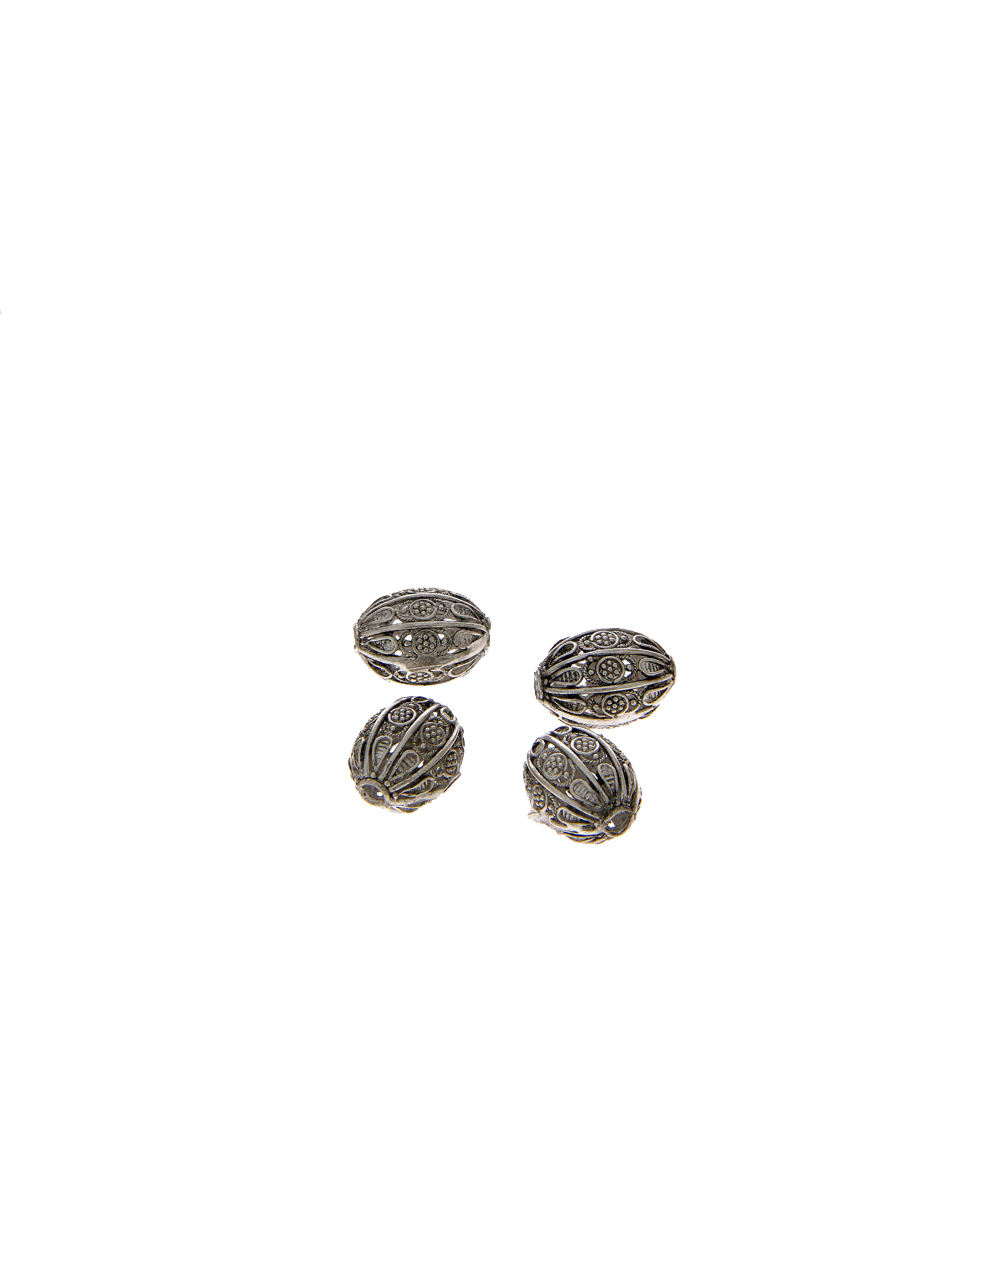 Stylish Silver Finish Beads